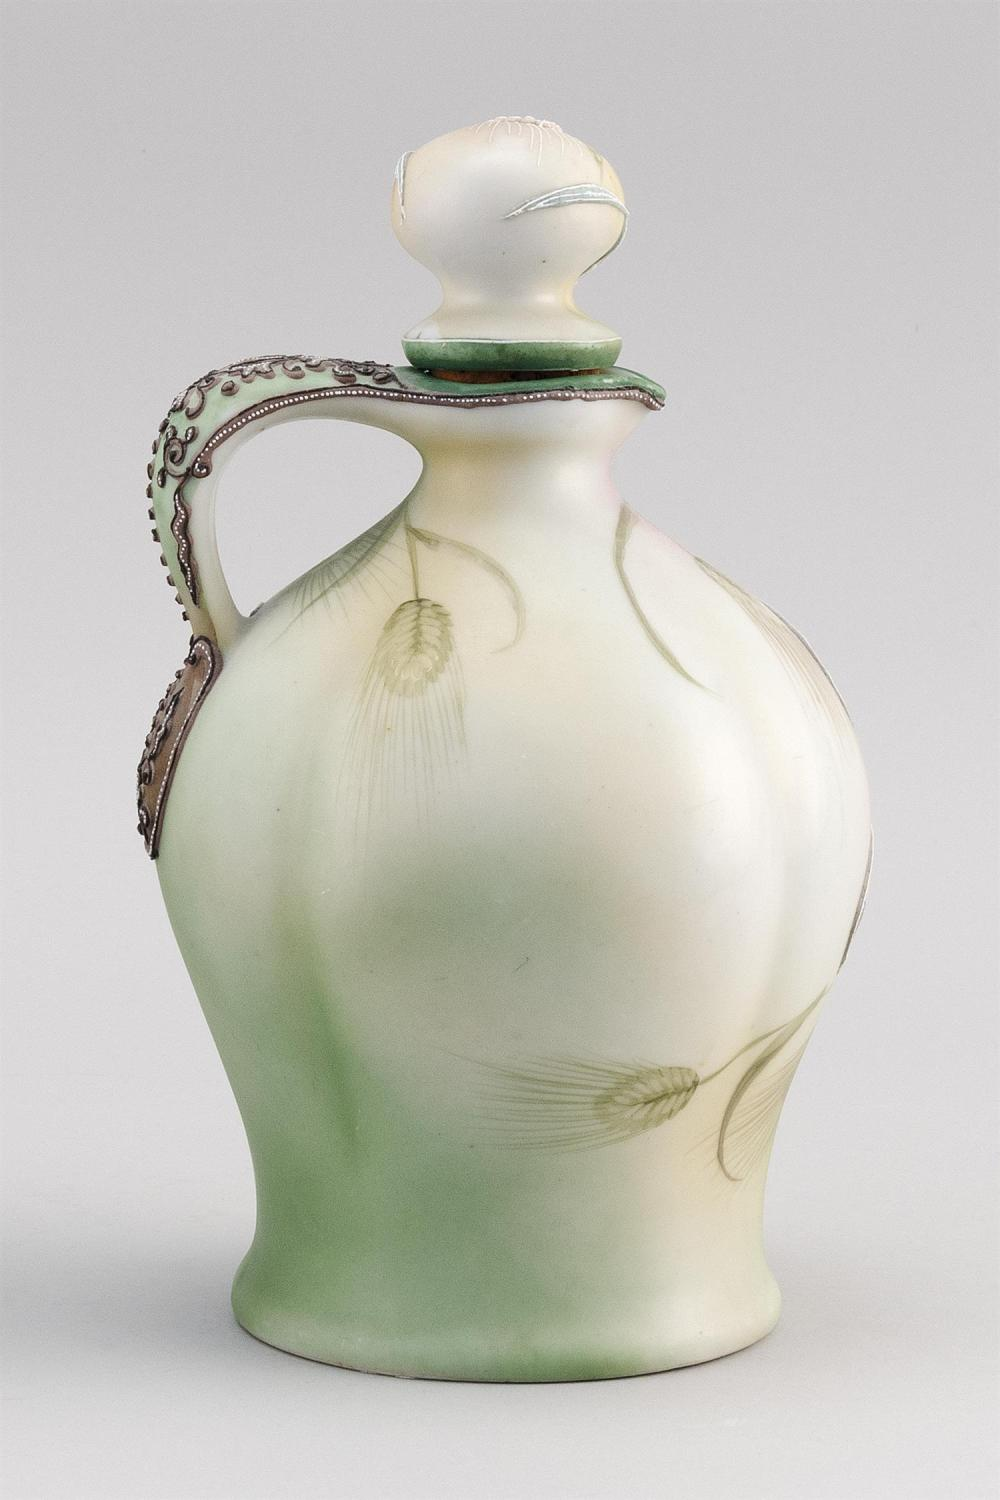 MORIAGE NIPPON PORCELAIN CLARET JUG With moriage wheat design on a wheat-patterned ground. Van Patten #52 mark on base. Height 9